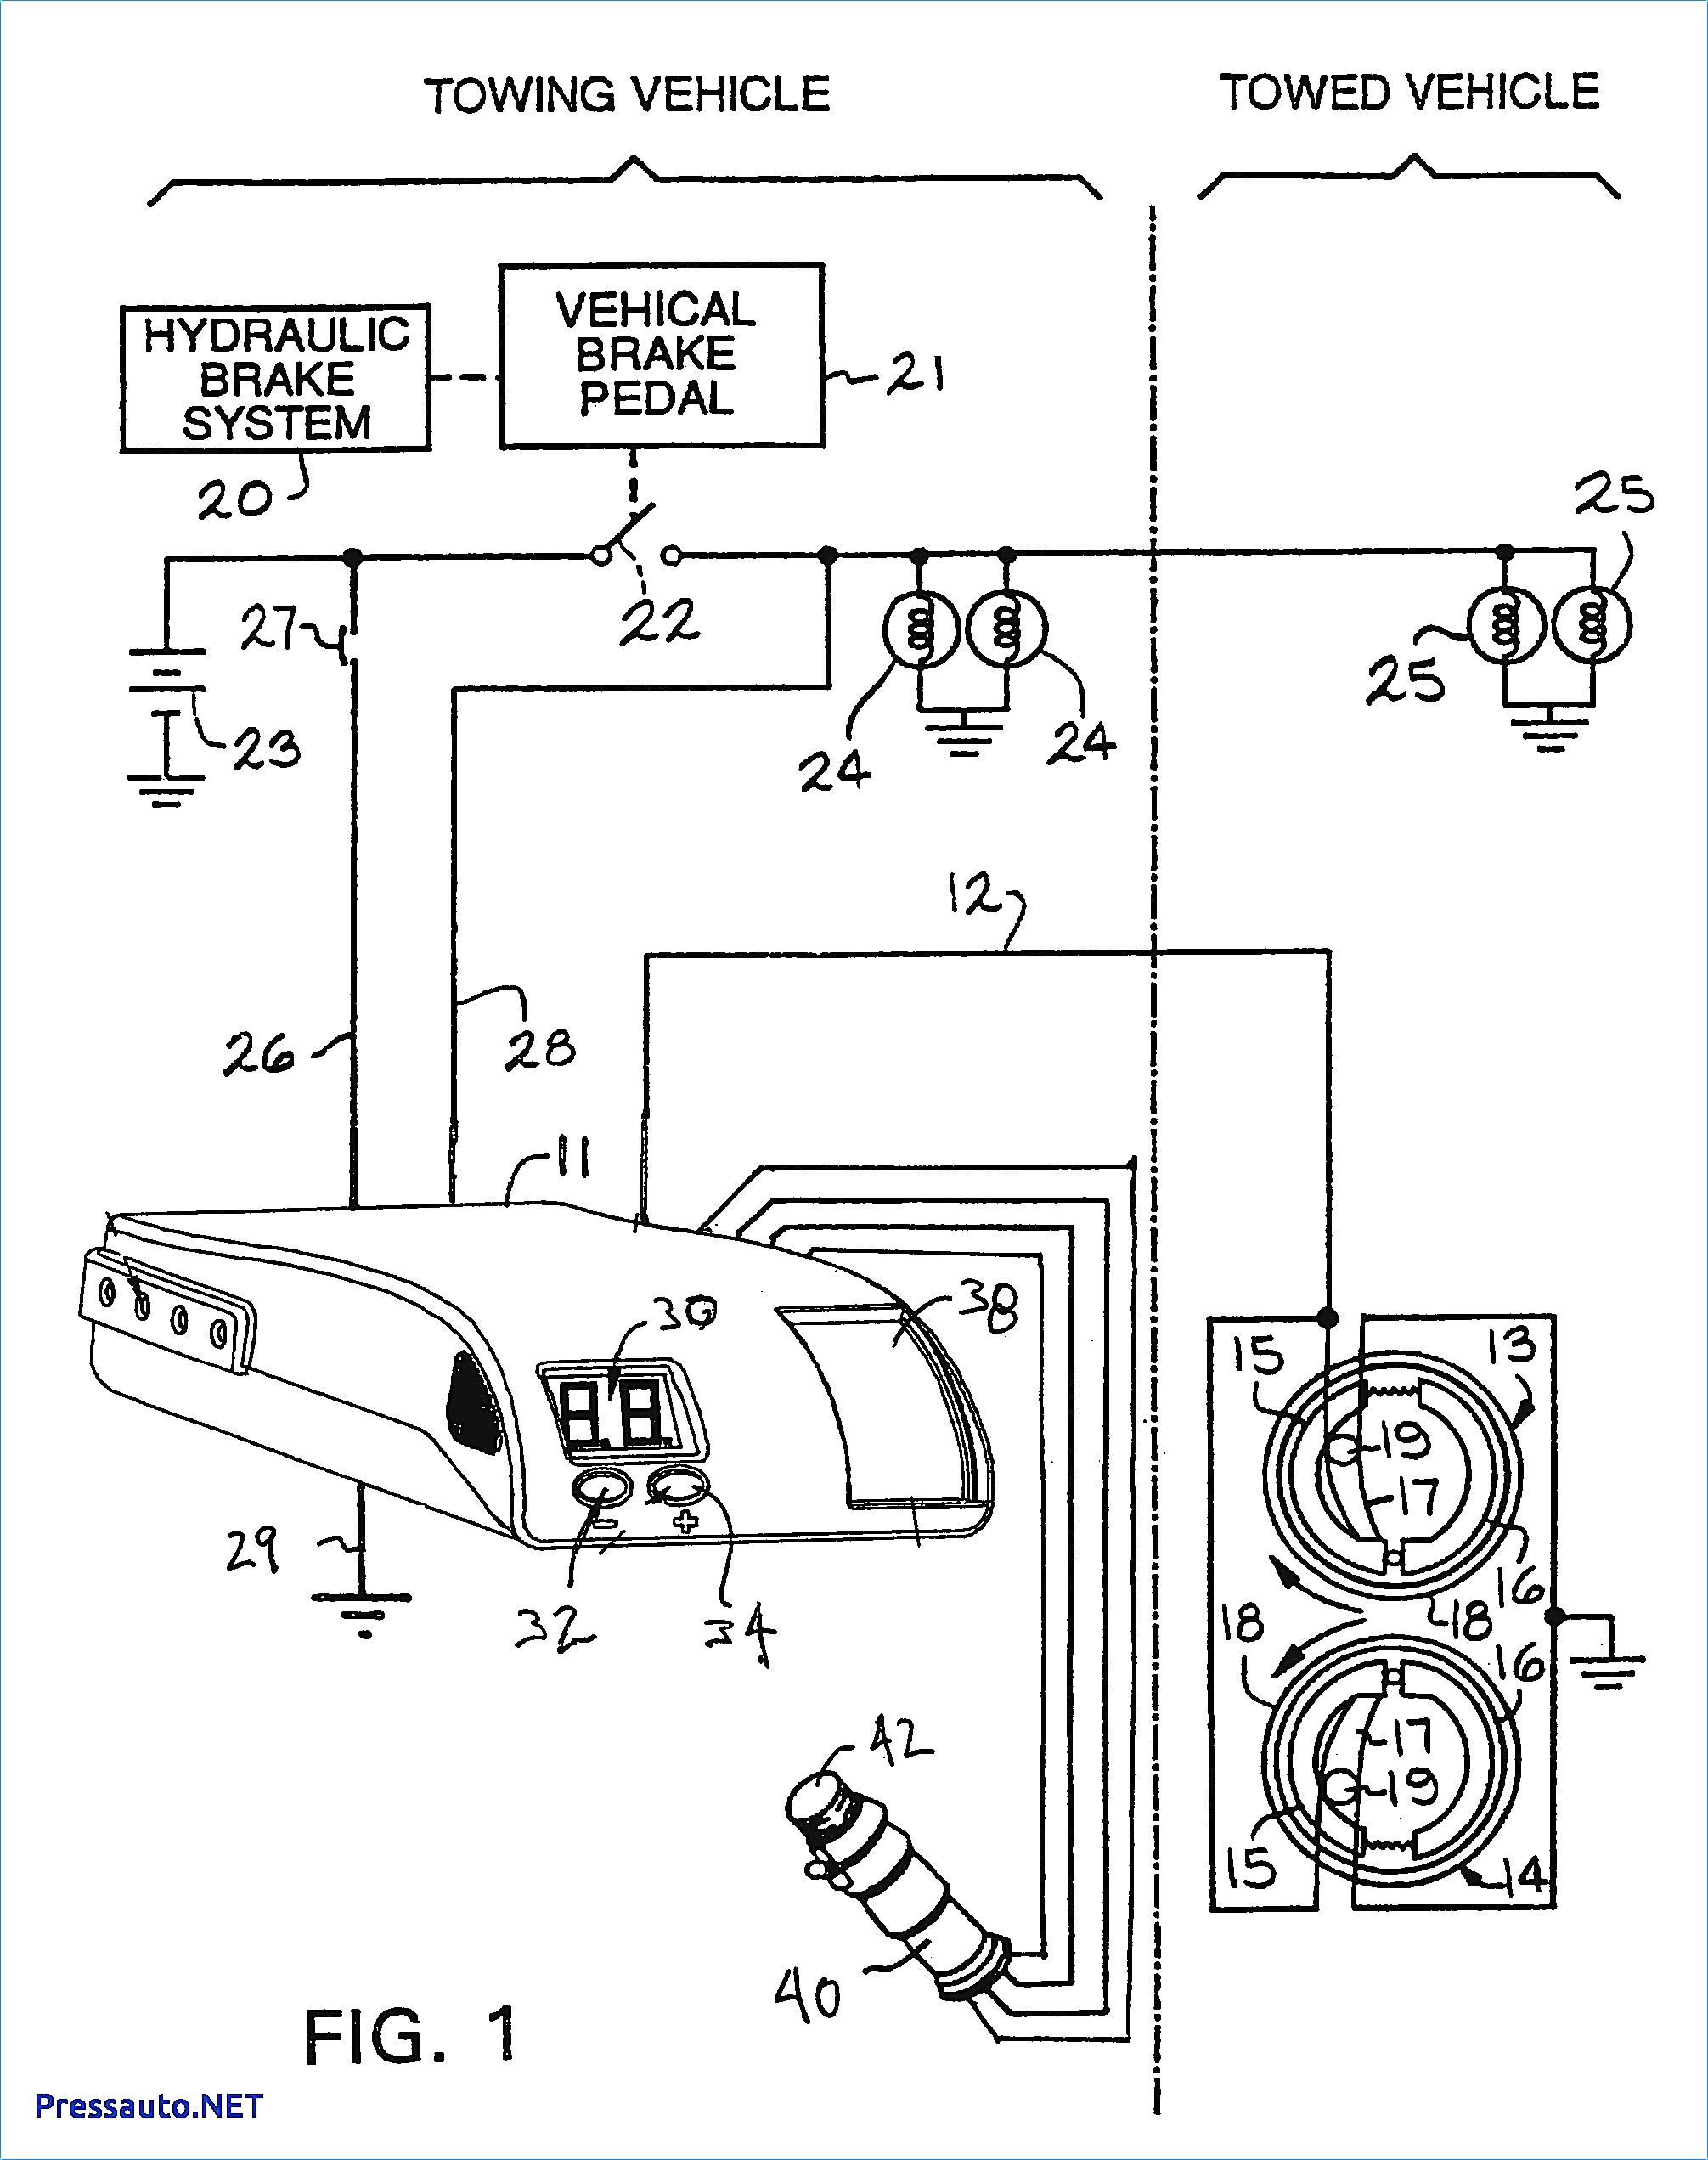 Auto Brake System Diagram Tekonsha Voyager Wiring Diagram Brake Controller Best Admirable at Of Auto Brake System Diagram